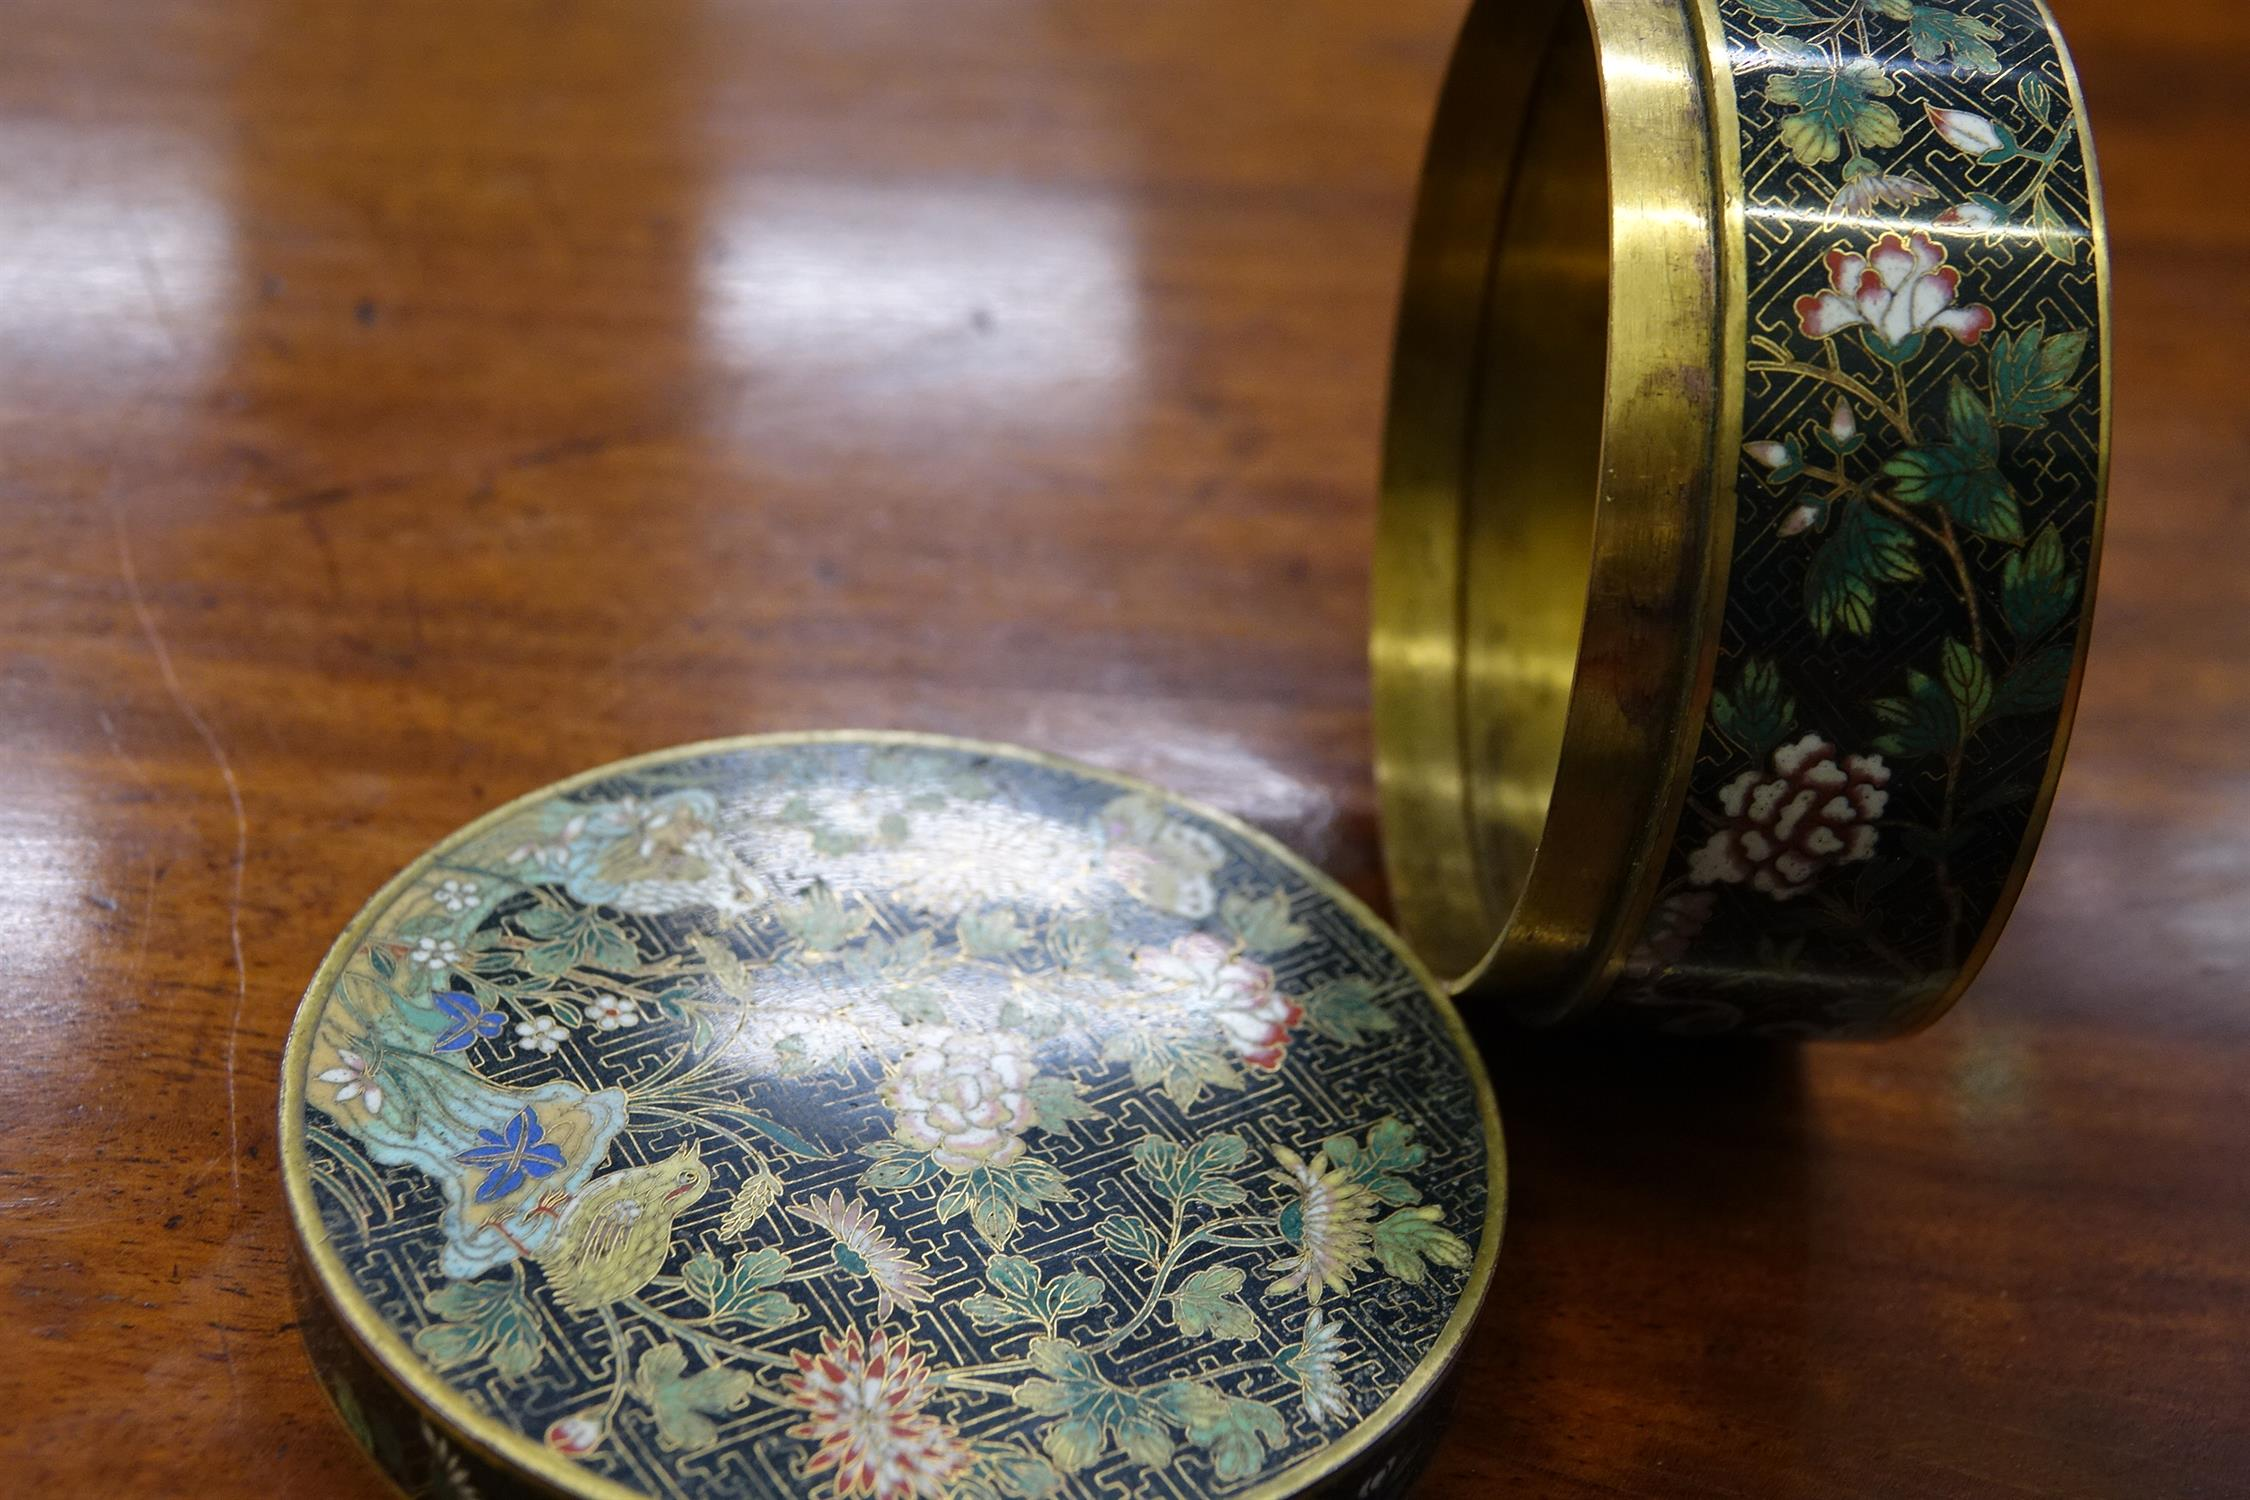 A 'FLOWER AND ROCKS' ROUND CLOISONNE BOX AND COVER China, Late Qing to Republican / Minguo period - Image 21 of 36